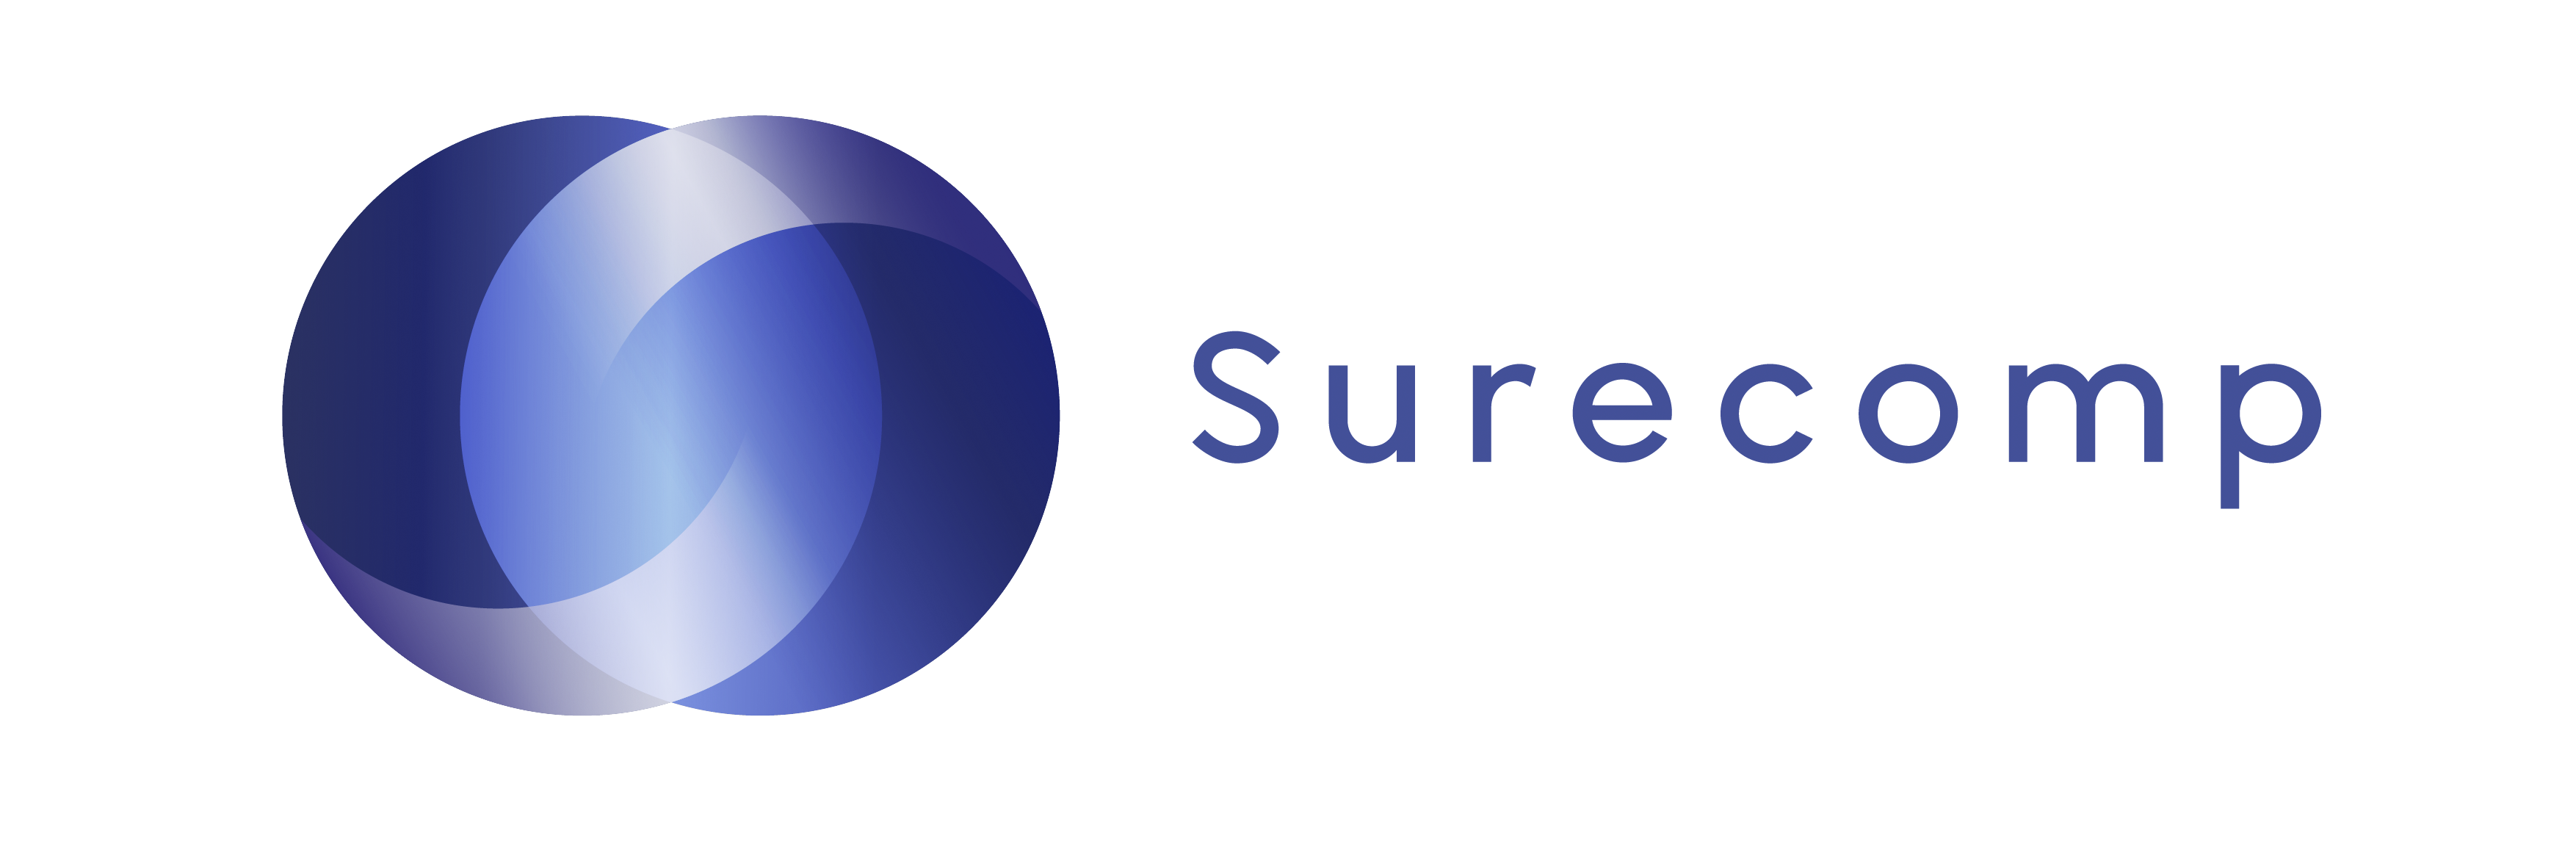 State Bank of India (California) Deploys Surecomp to Support Trade Finance Growth